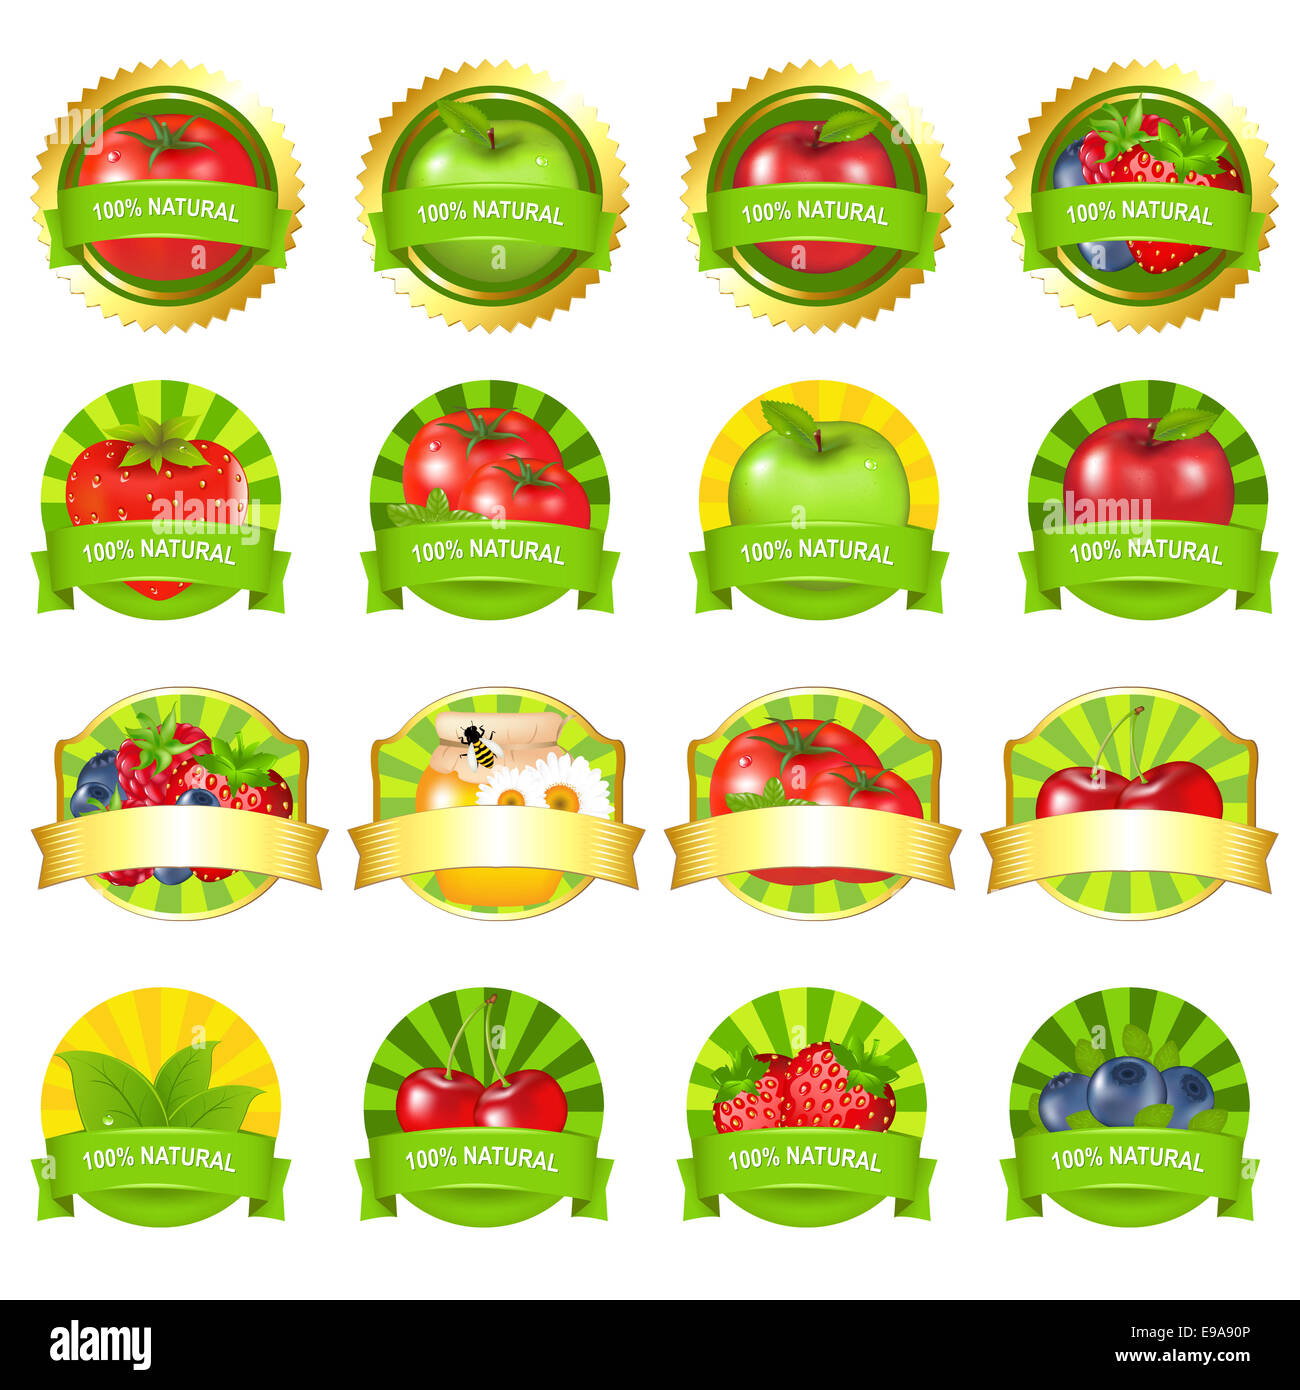 Fruits And Vegetables Labels Set - Stock Image